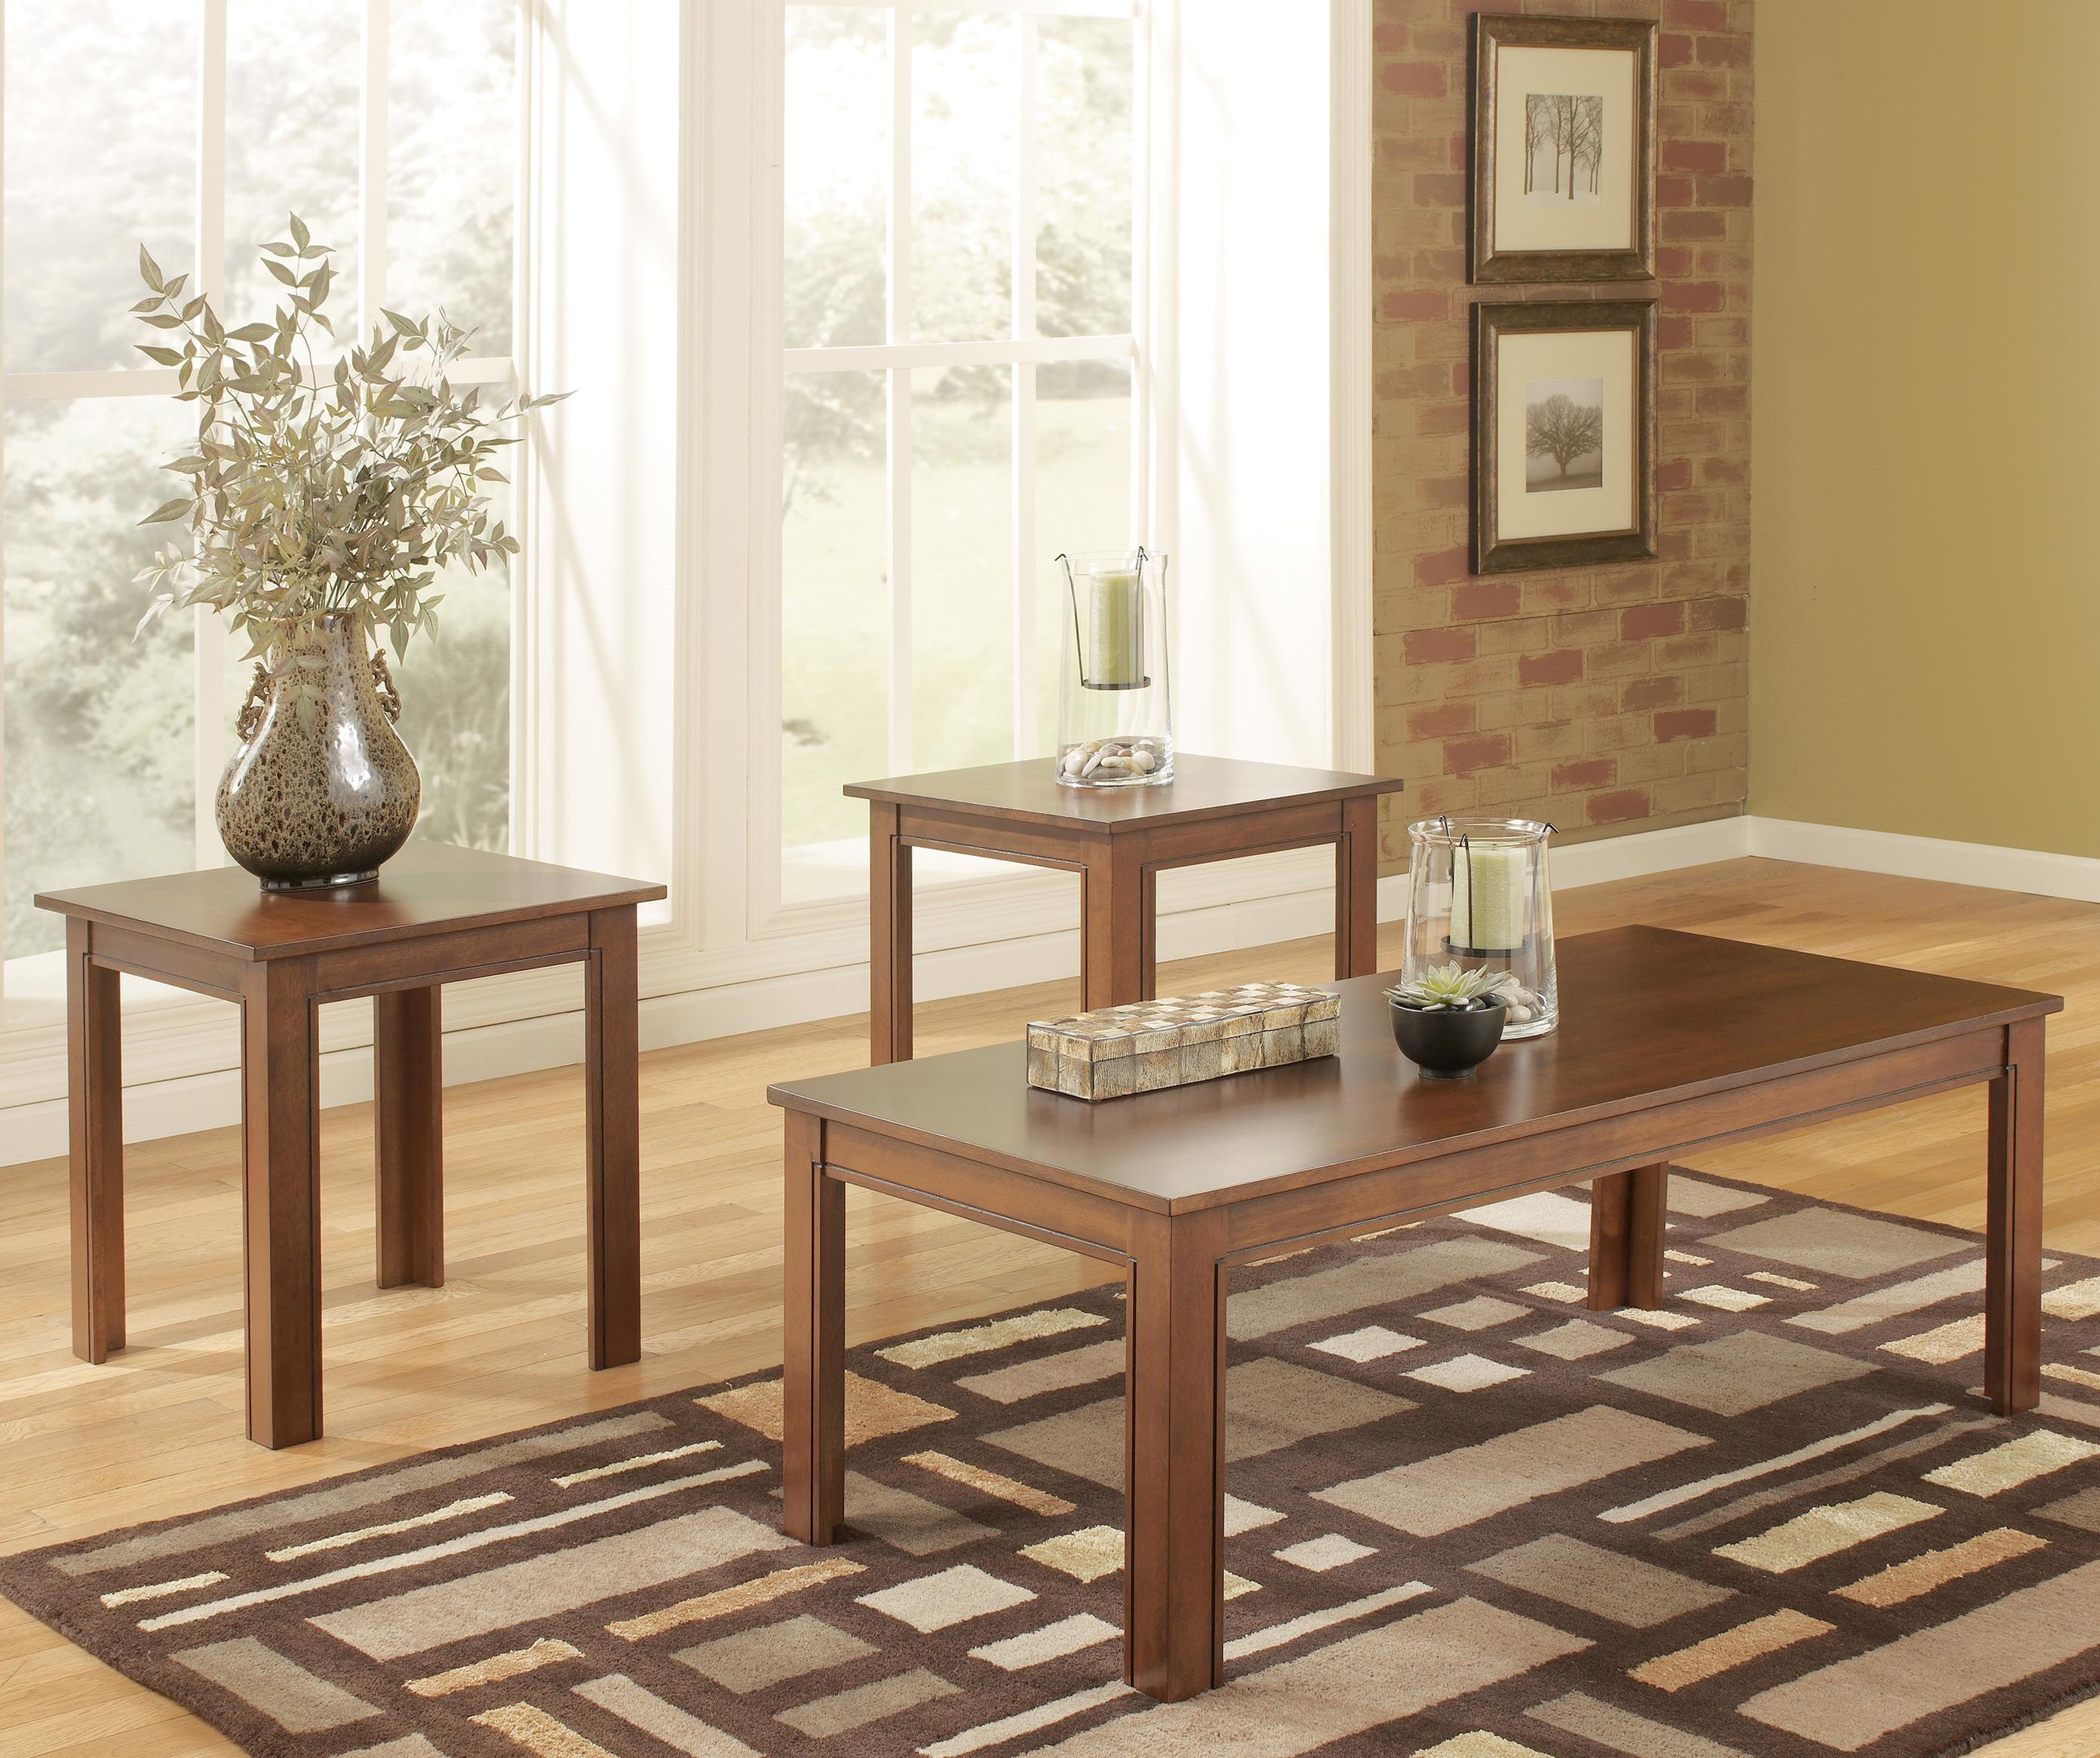 Signature Design by Ashley Yoshi 3 Piece Table Set - Item Number: T105-13